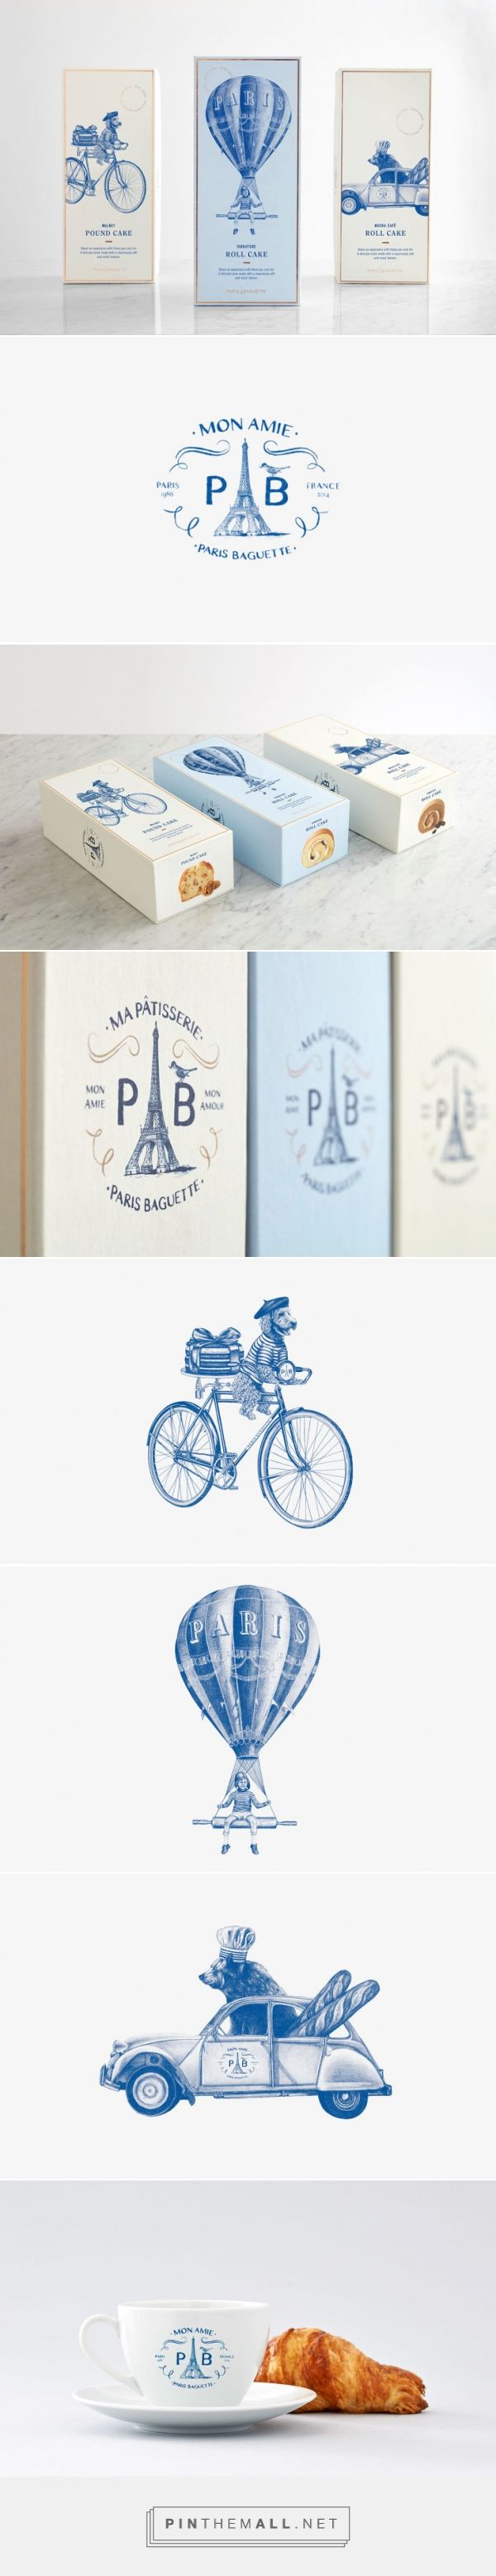 Paris Baguette | Fivestar Branding – Design and Branding Agency &…